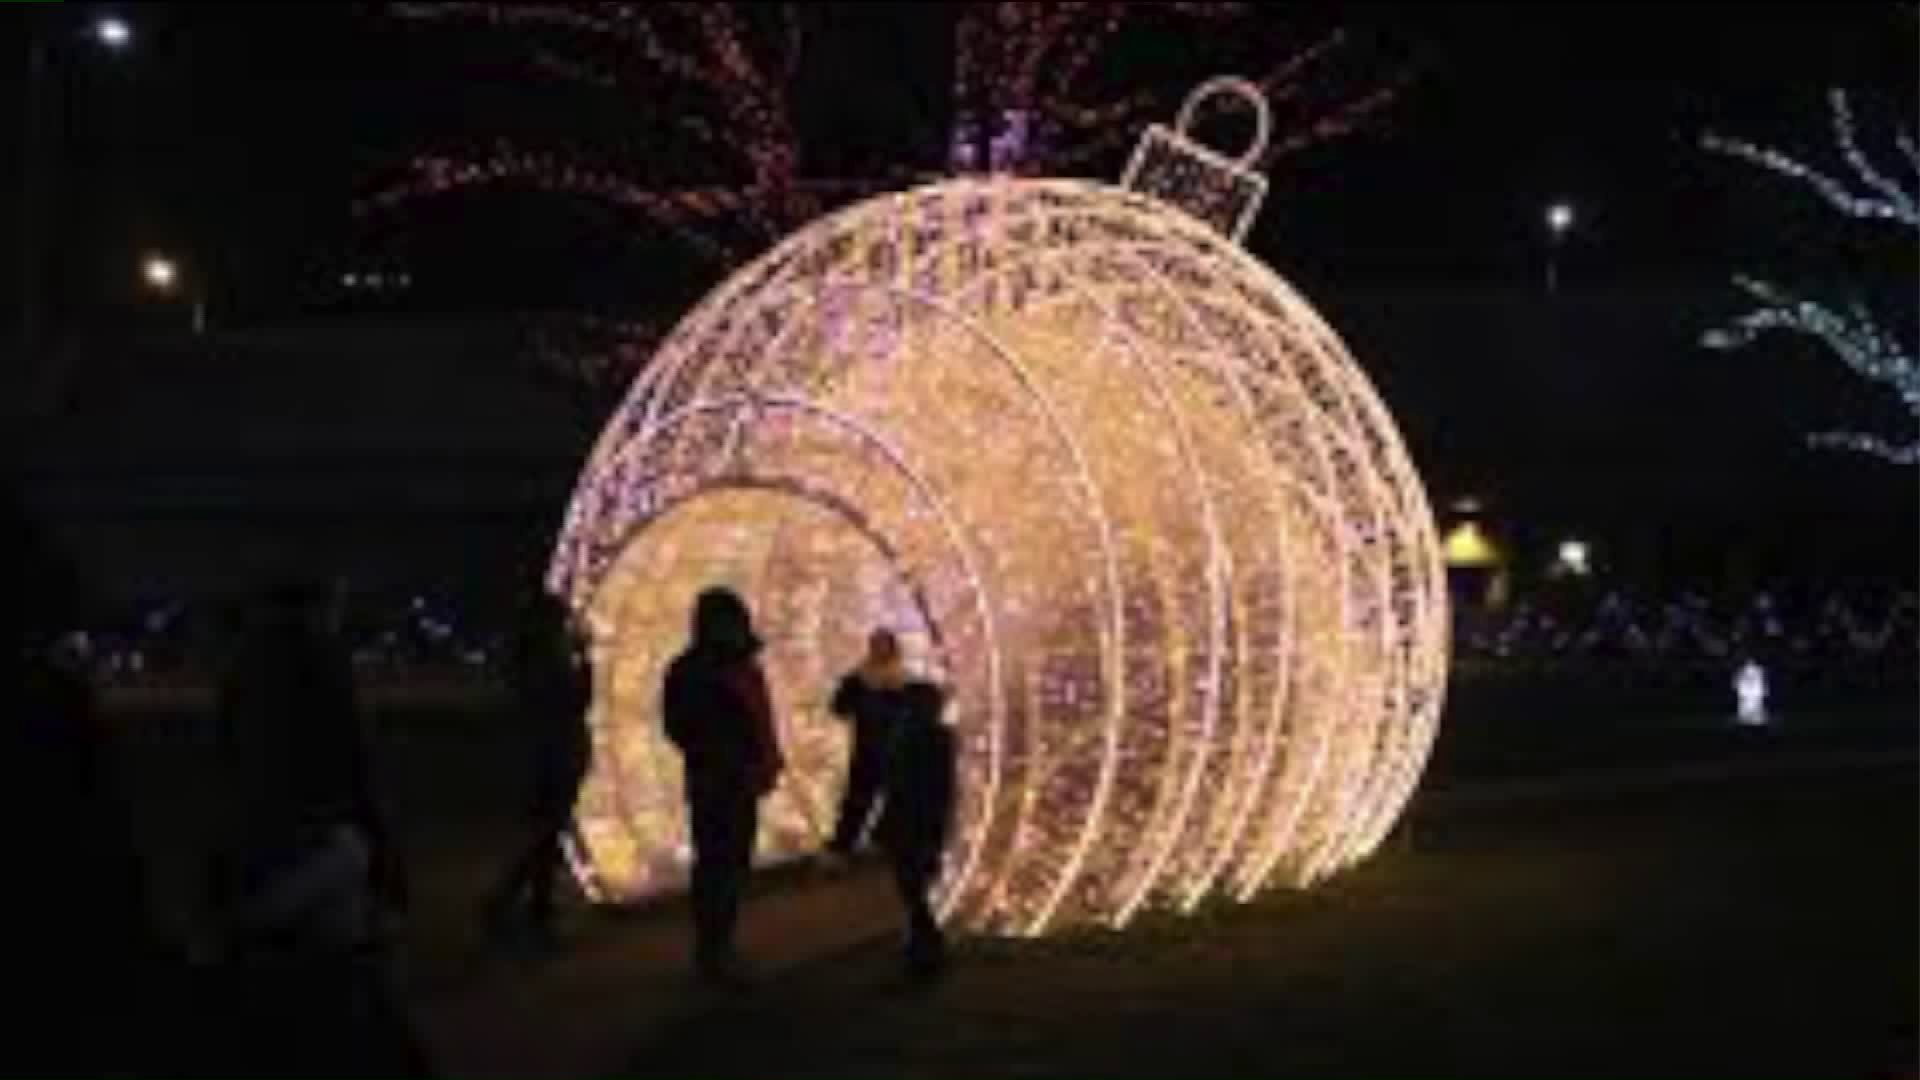 Rosemont Christmas Lights 2020 How Rosemont prepares for its annual Christmas light displays | WGN TV